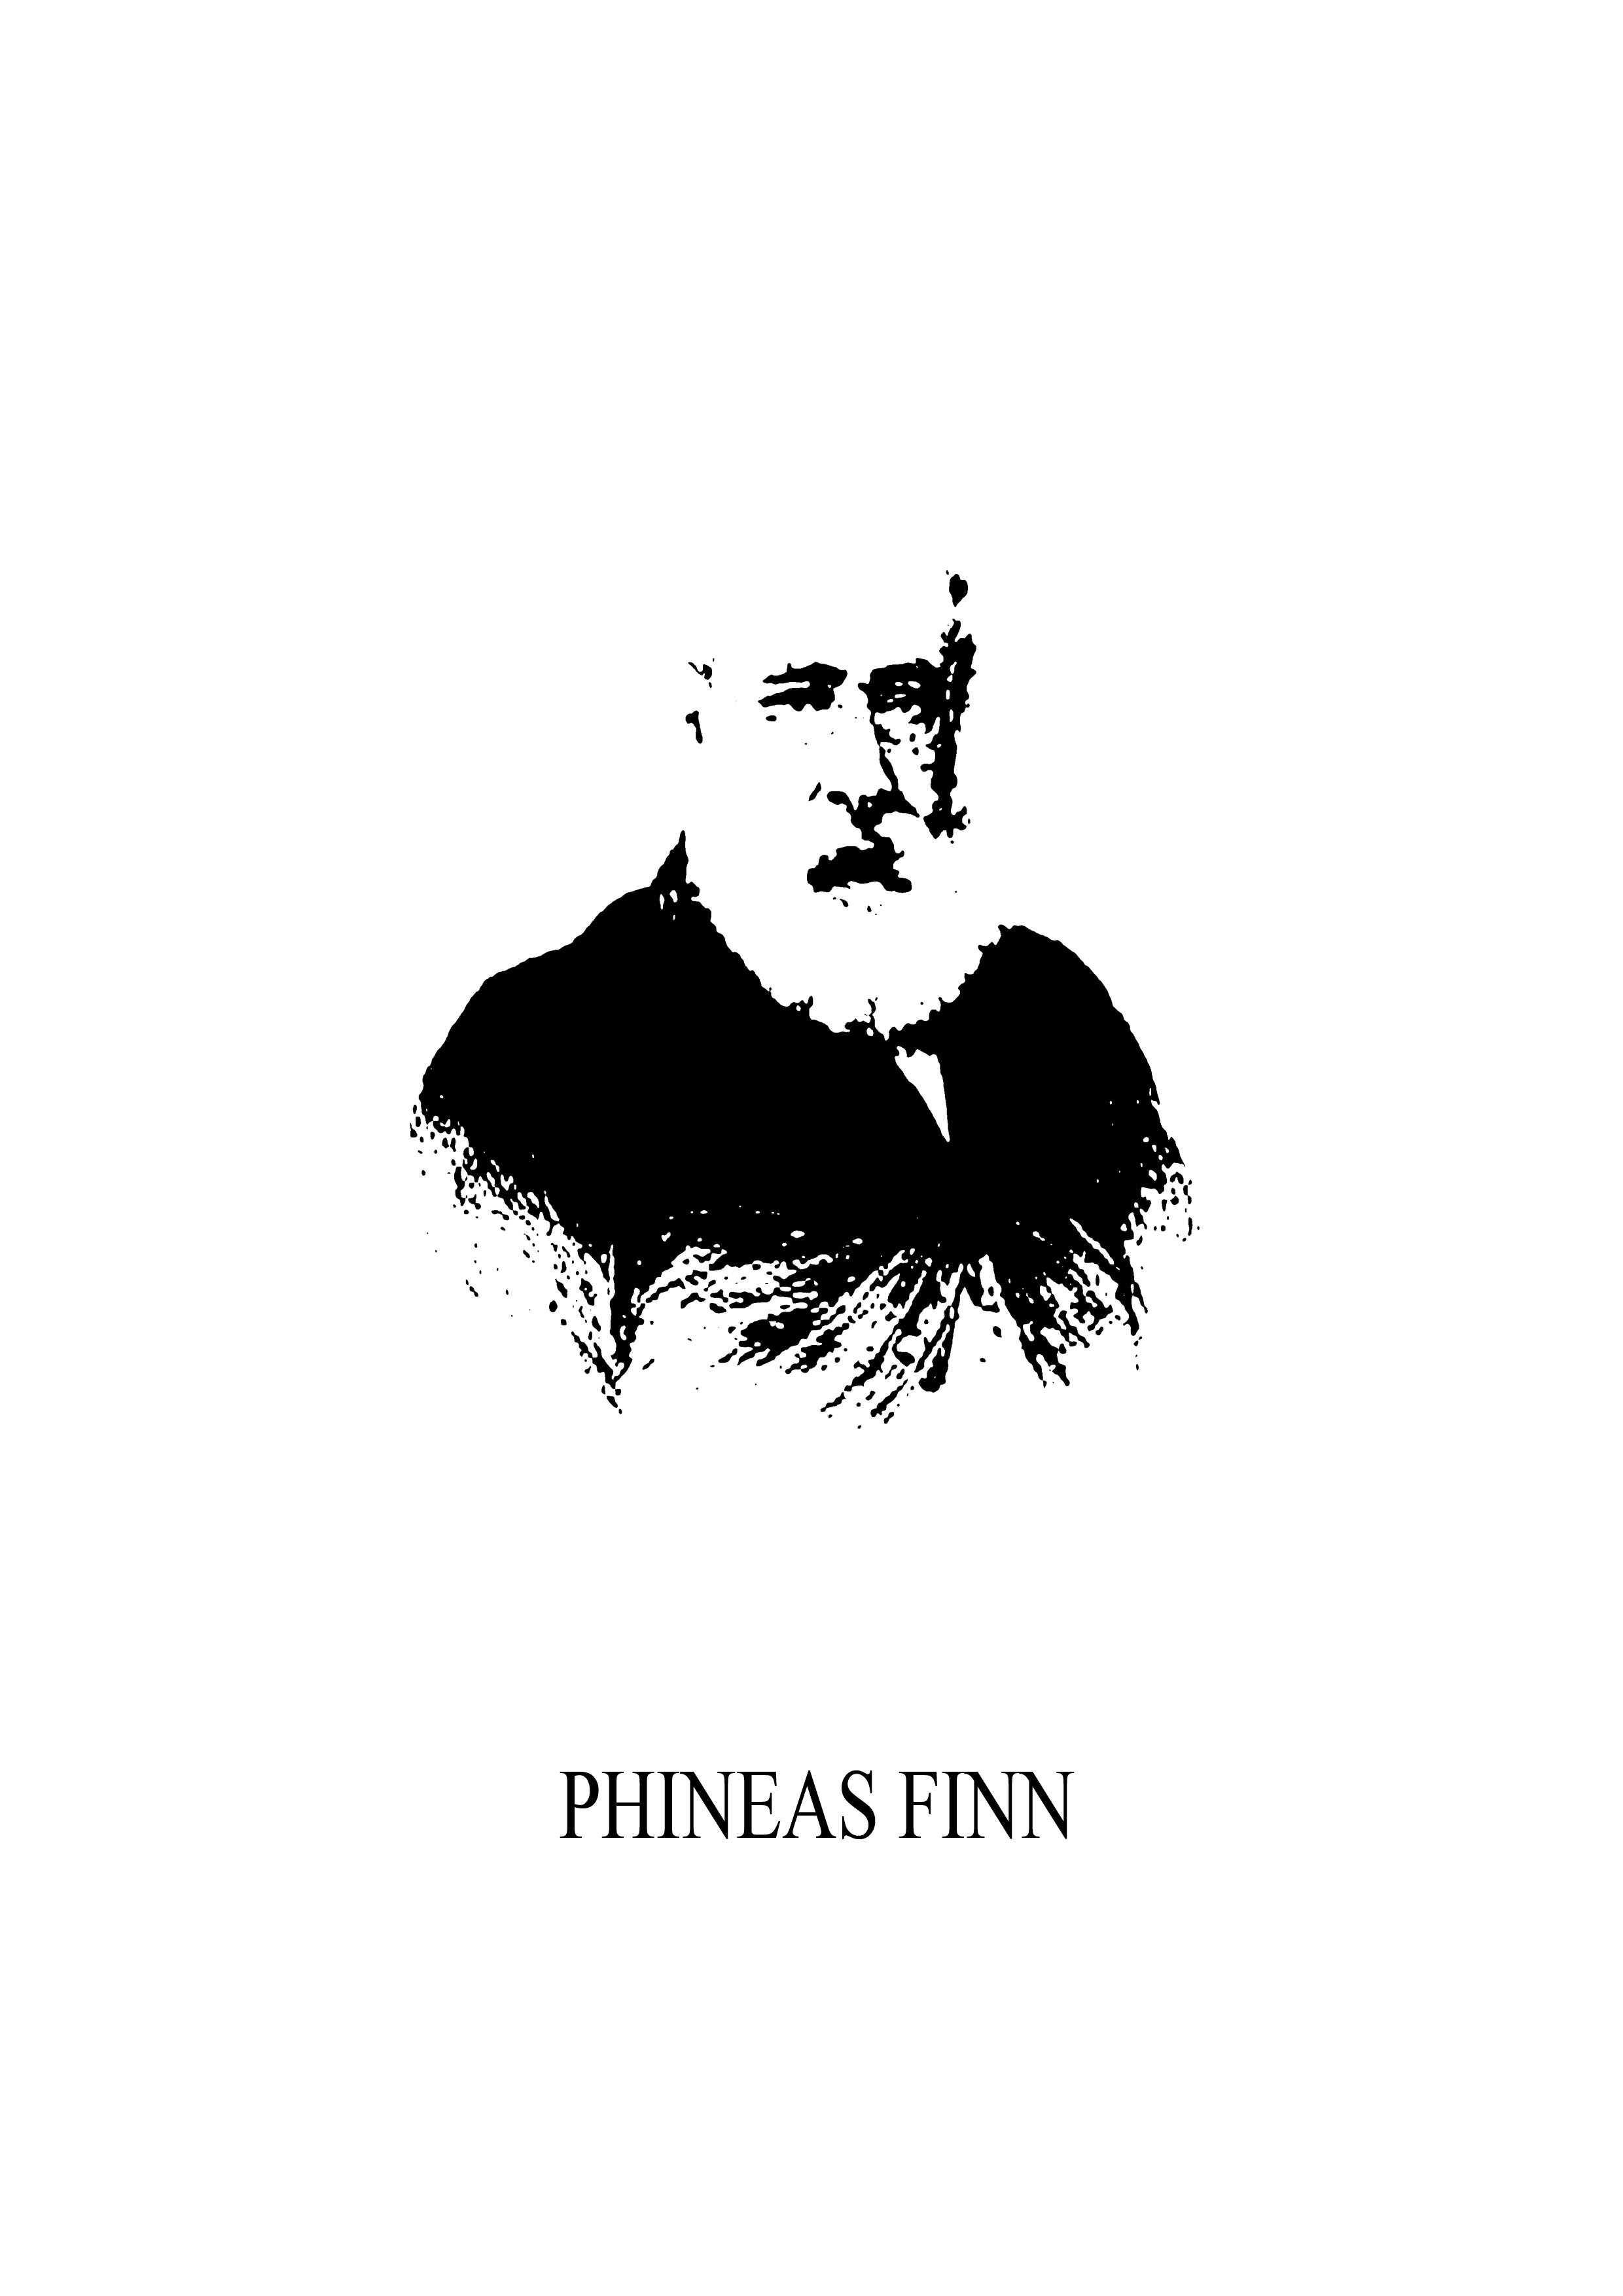 Phineas Finn By: Anthony Trollope